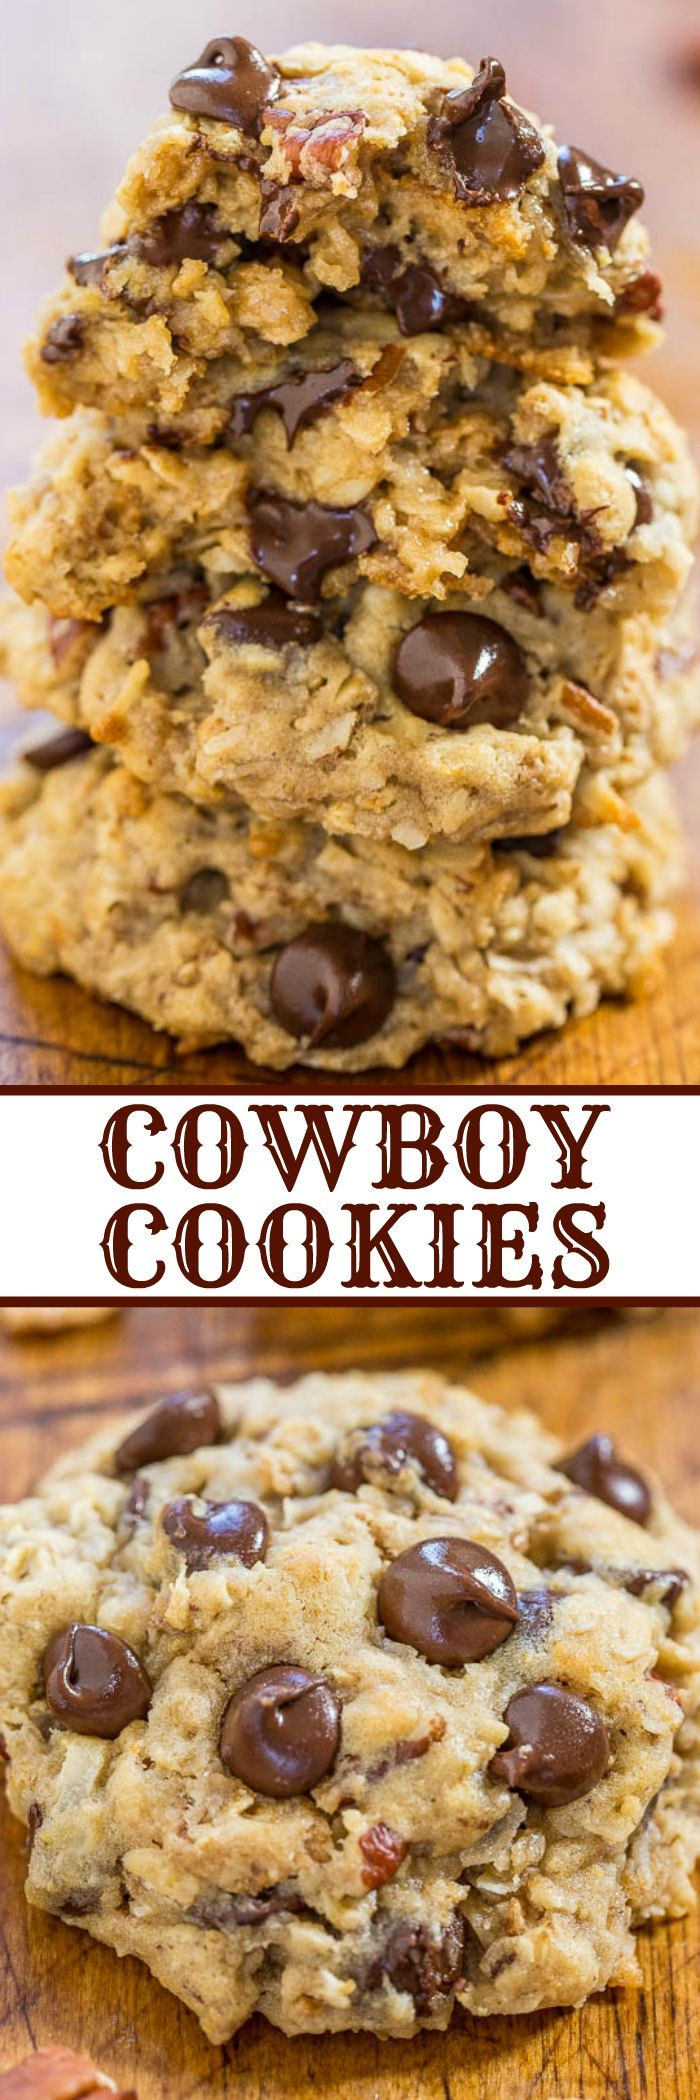 Cowboy Cookies - Chewy oats, sweet coconut, crunchy pecans, and plenty of chocolate! Hearty with tons of texture and they stay soft and chewy!! Everyone (not just cowboys) loves these cookies!: